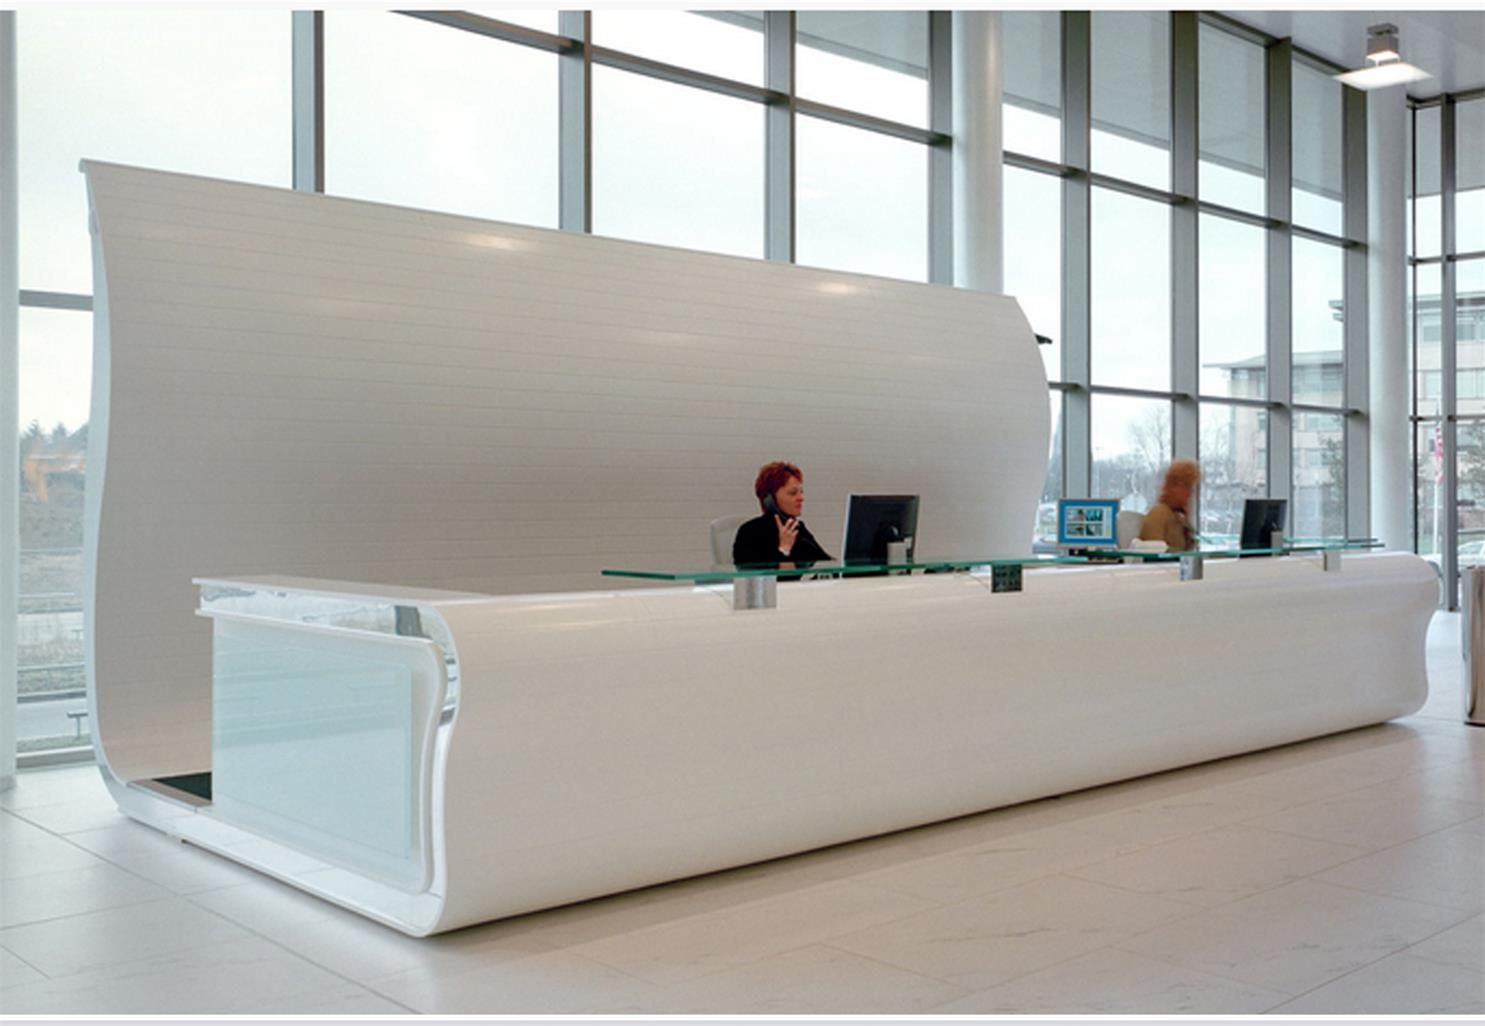 Large Custom Design Recption Information Desk For Lobby